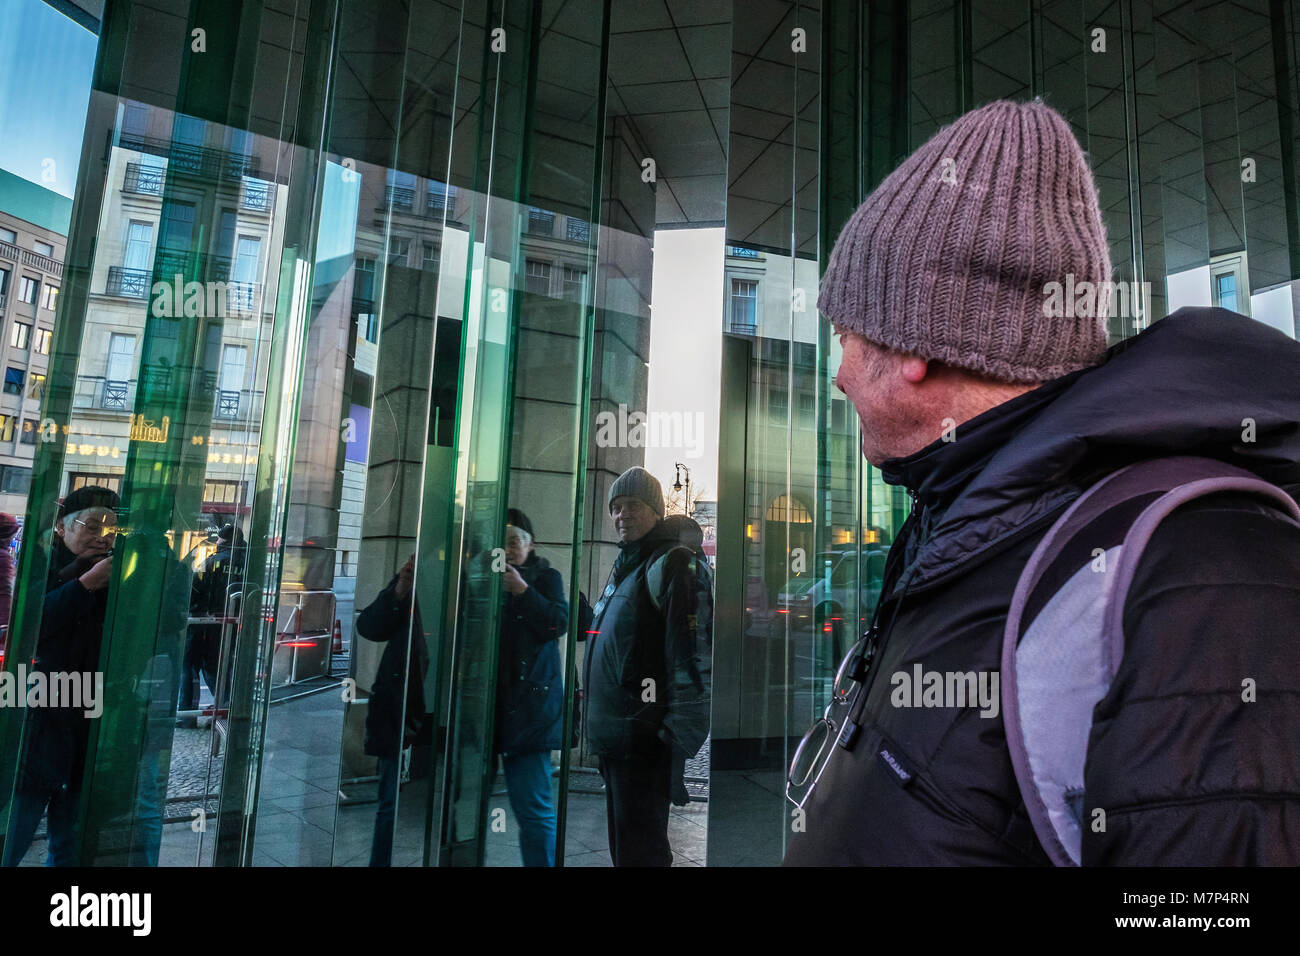 Berlin-Mitte.Elderly tourists taking photos of themselves in reflective building surface.Senior man & woman - Stock Image